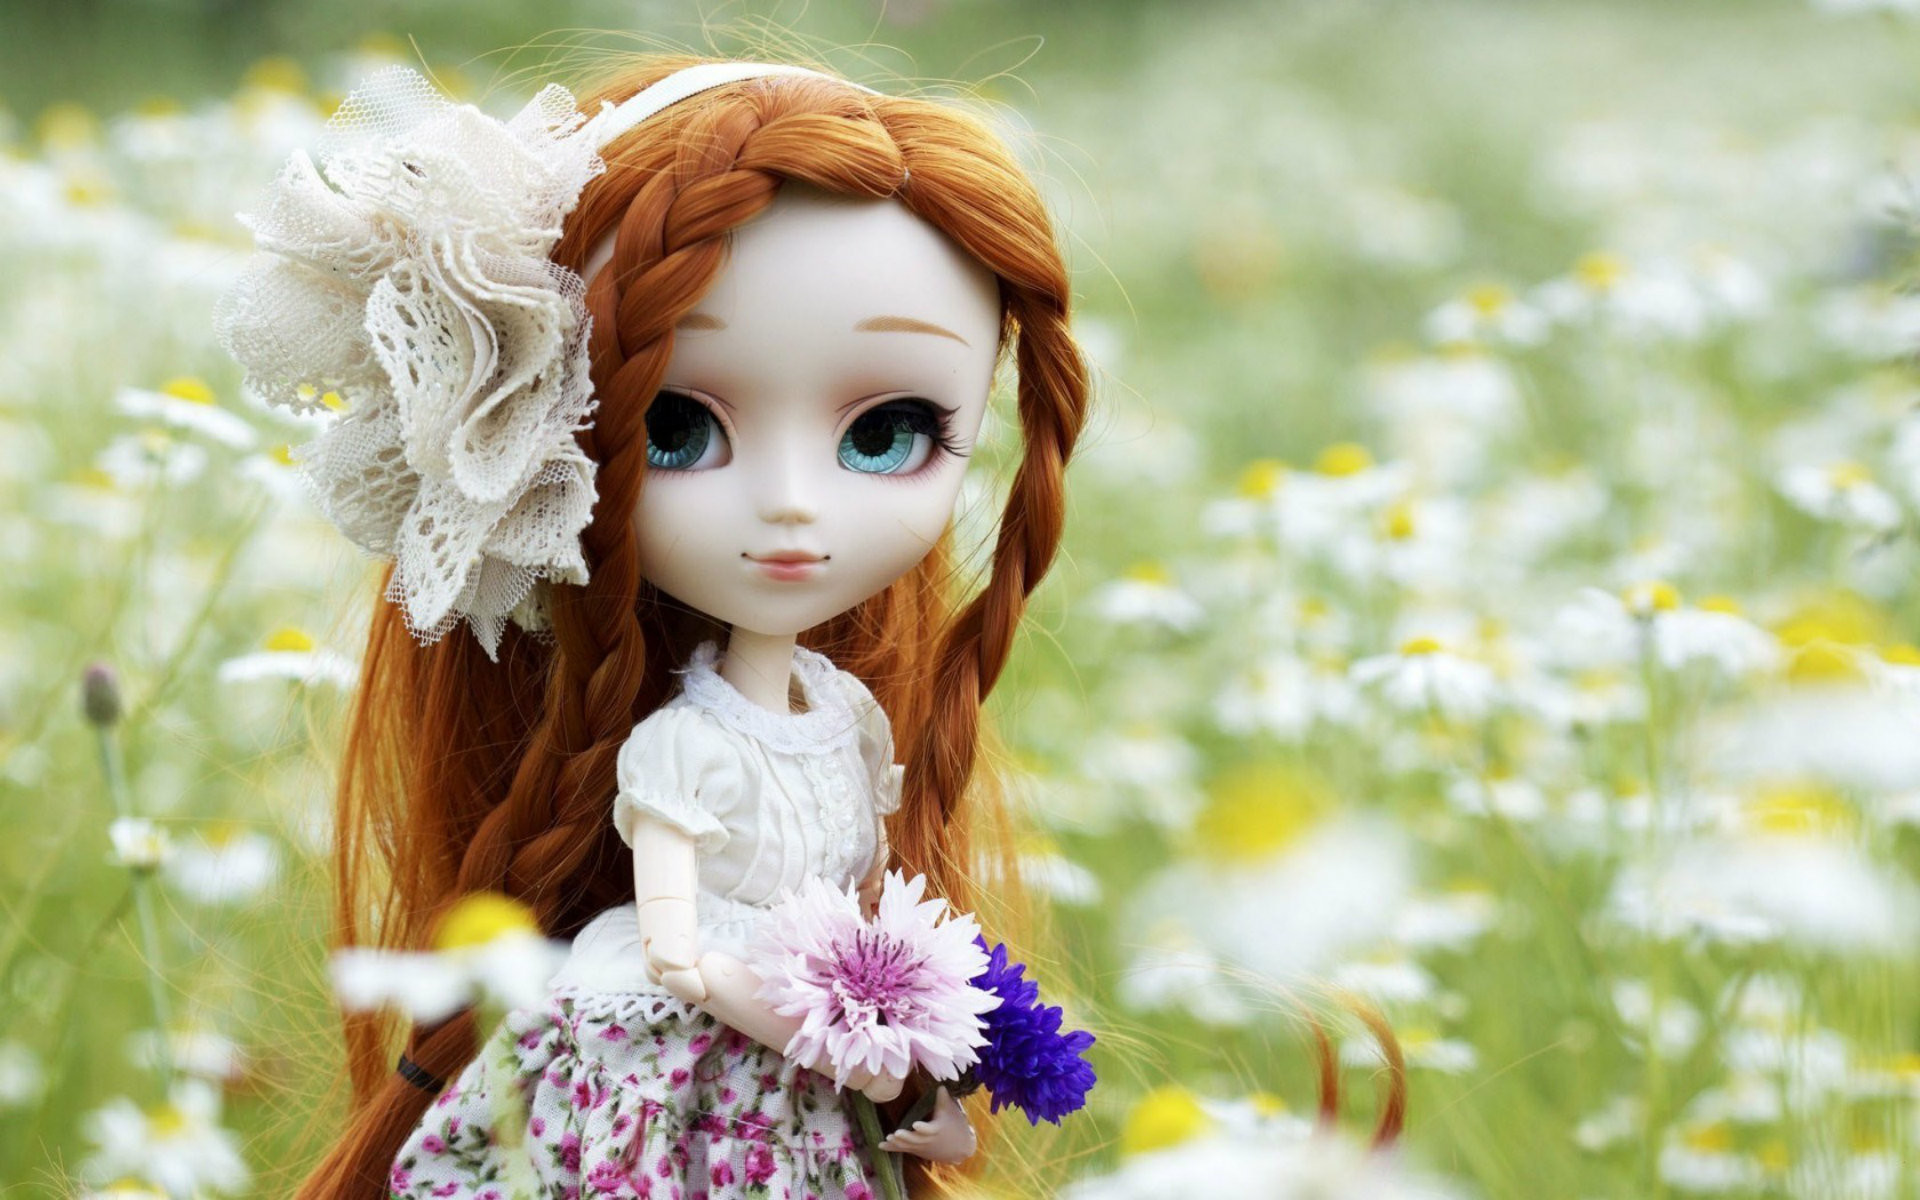 Wallpapers of dolls 76 images - Love doll hd wallpaper download ...